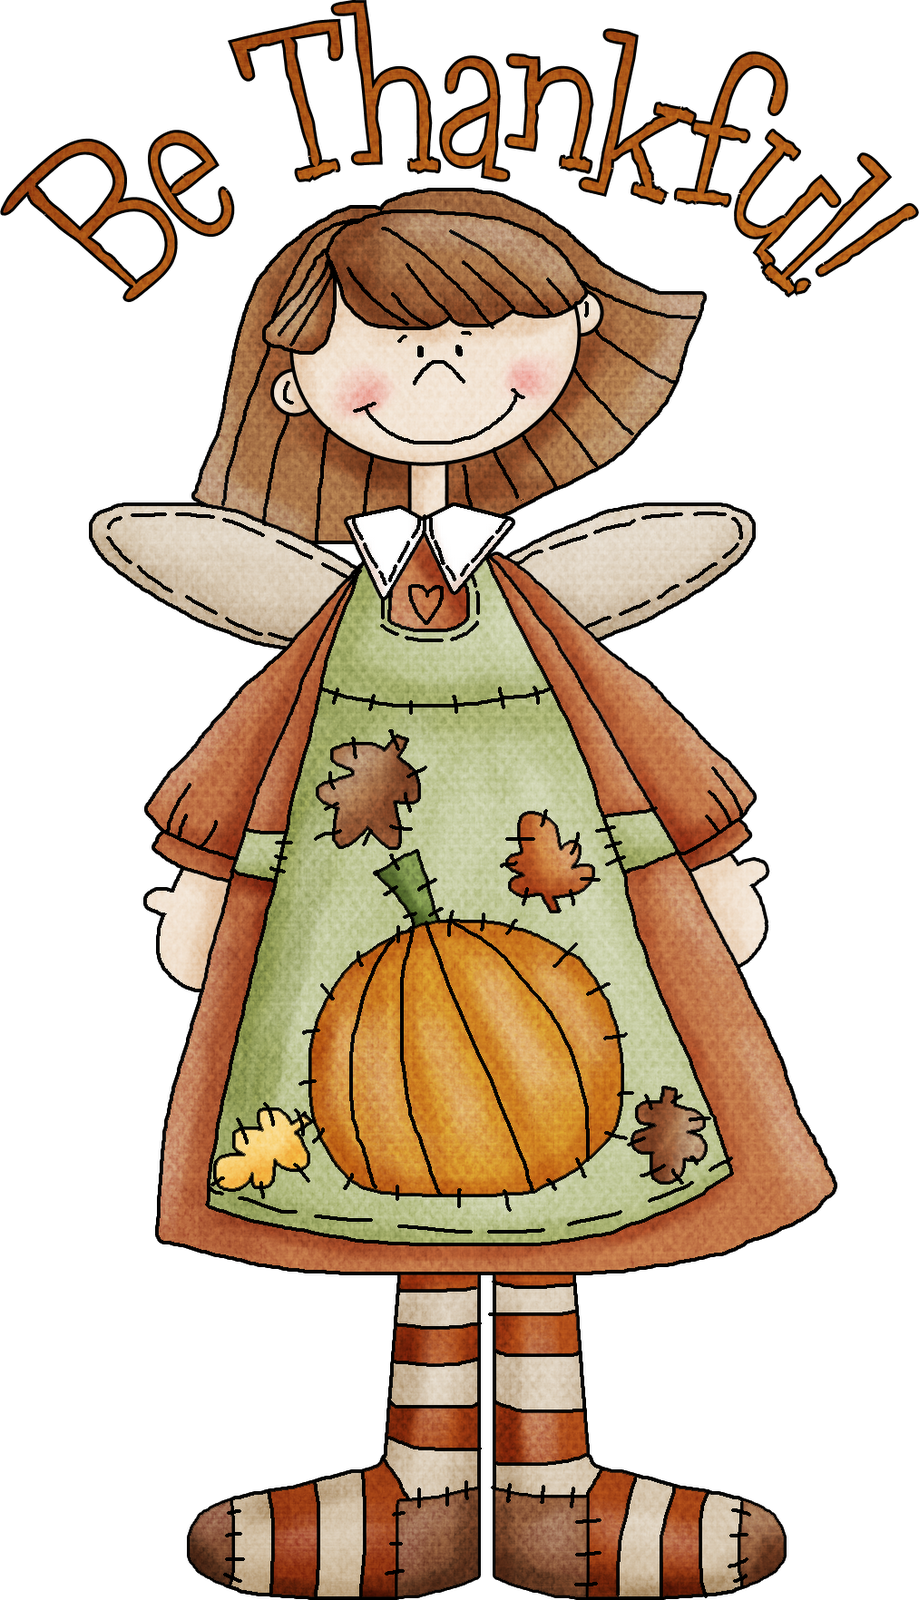 Angel clipart thanksgiving. Thanking god for everything